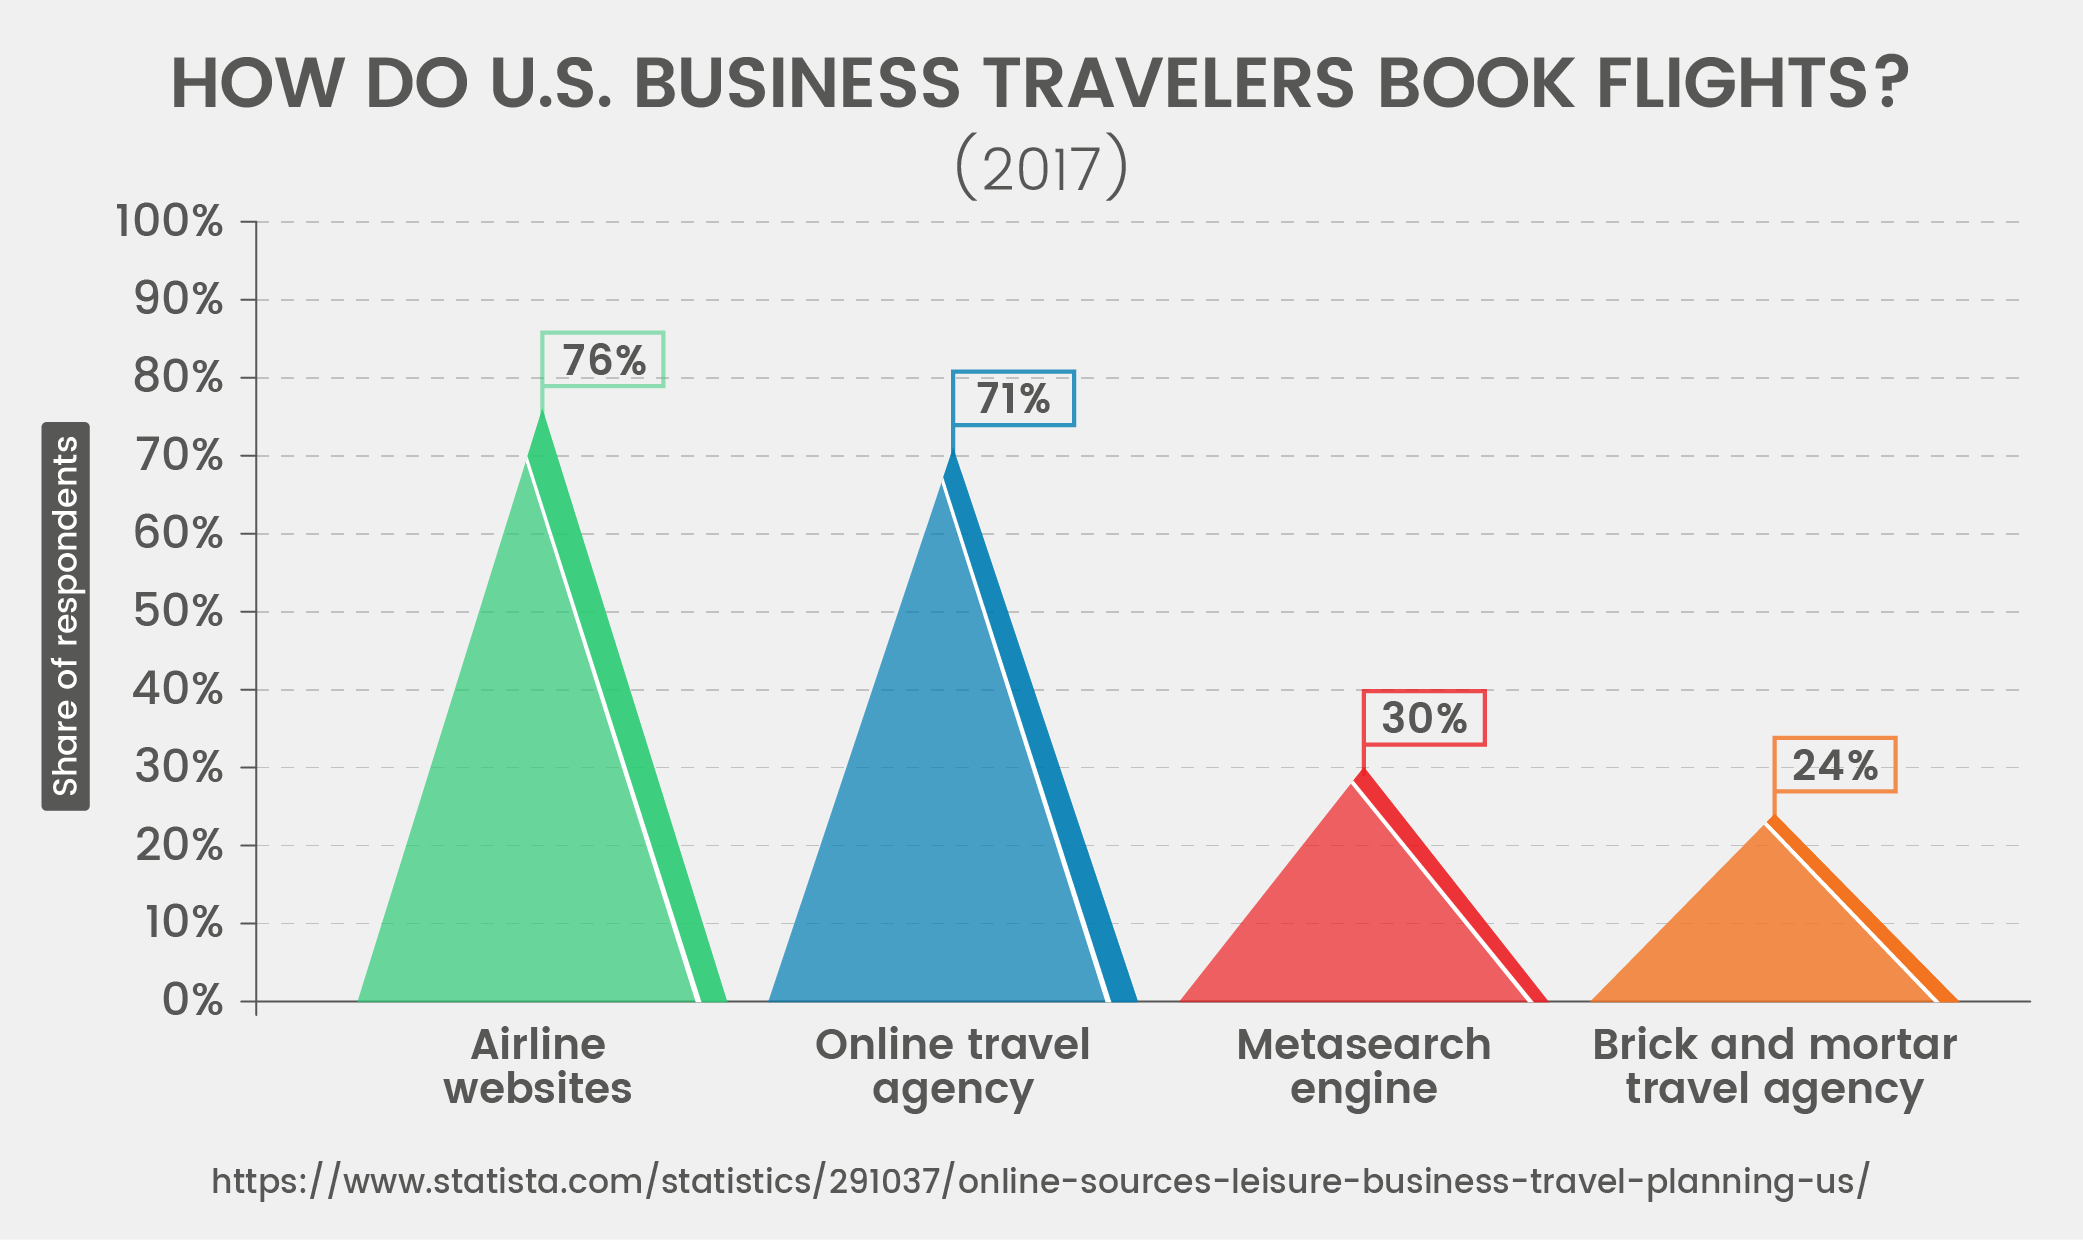 U.S. Business Travelers By Where They Book Flights (2017)